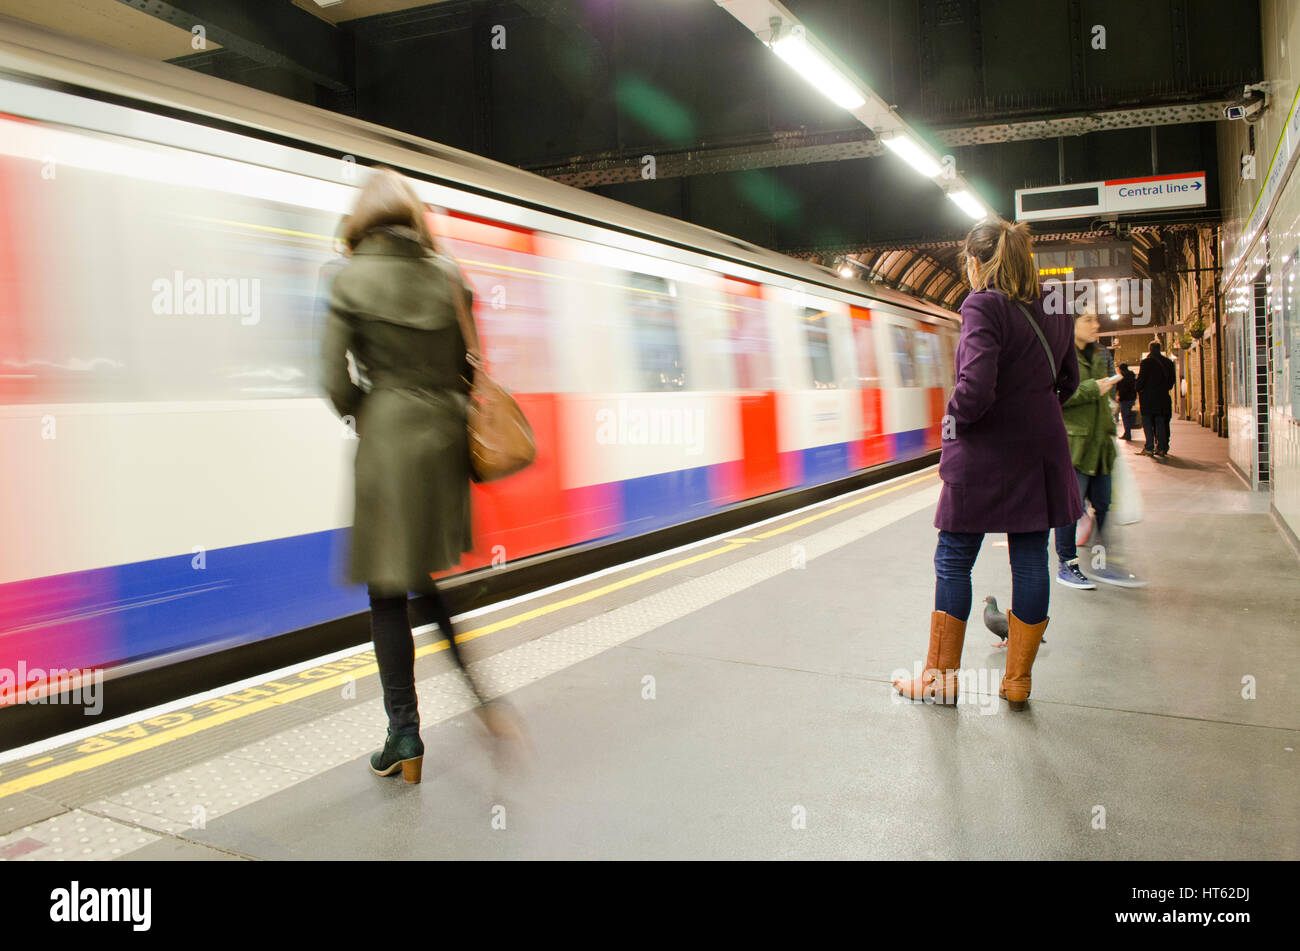 En attente d'un train sur le quai de la station de métro de Londres Photo Stock